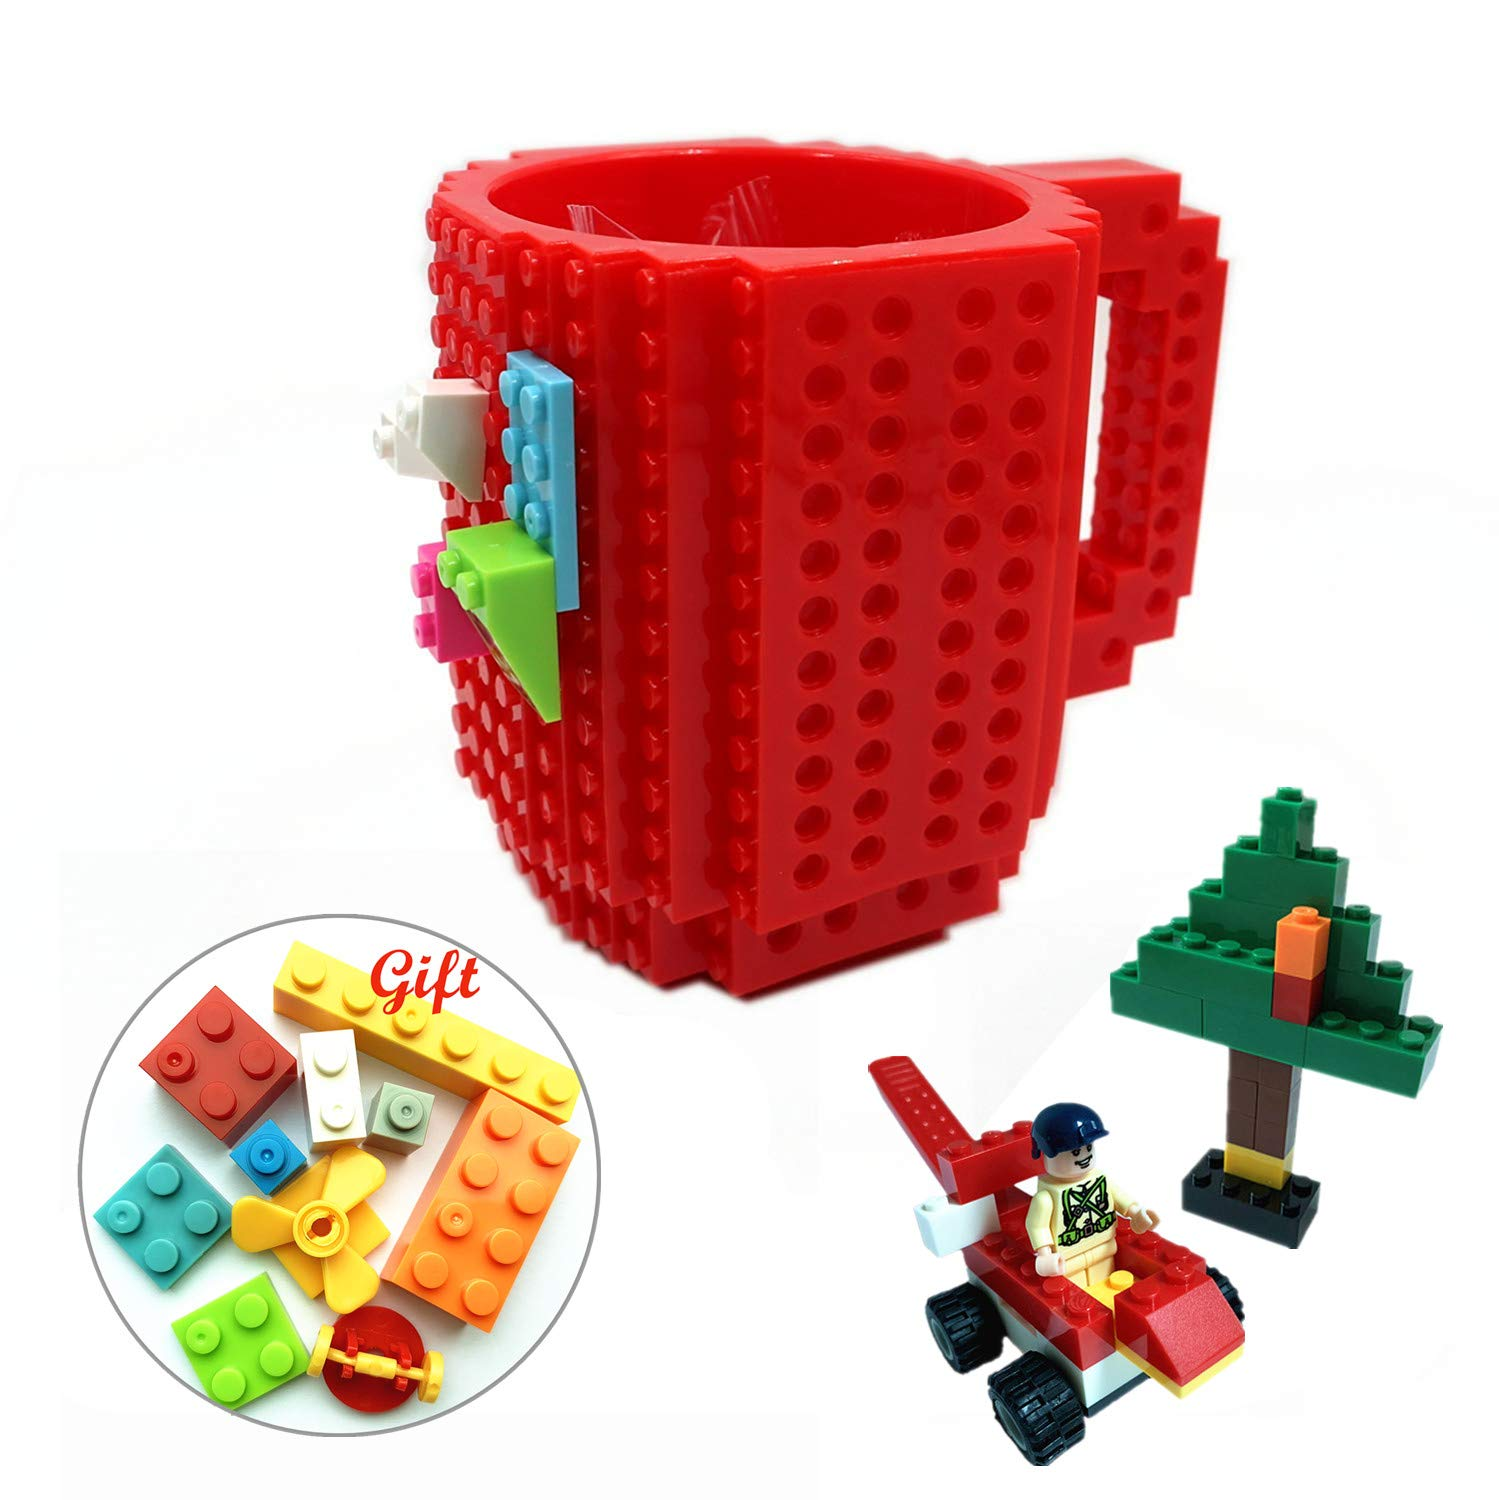 Lumsburry Build-On Brick Mug DIY Coffee Cup Creative Building Blocks for Coffee Tea Beverage Drinking Funny Xmas(Red)